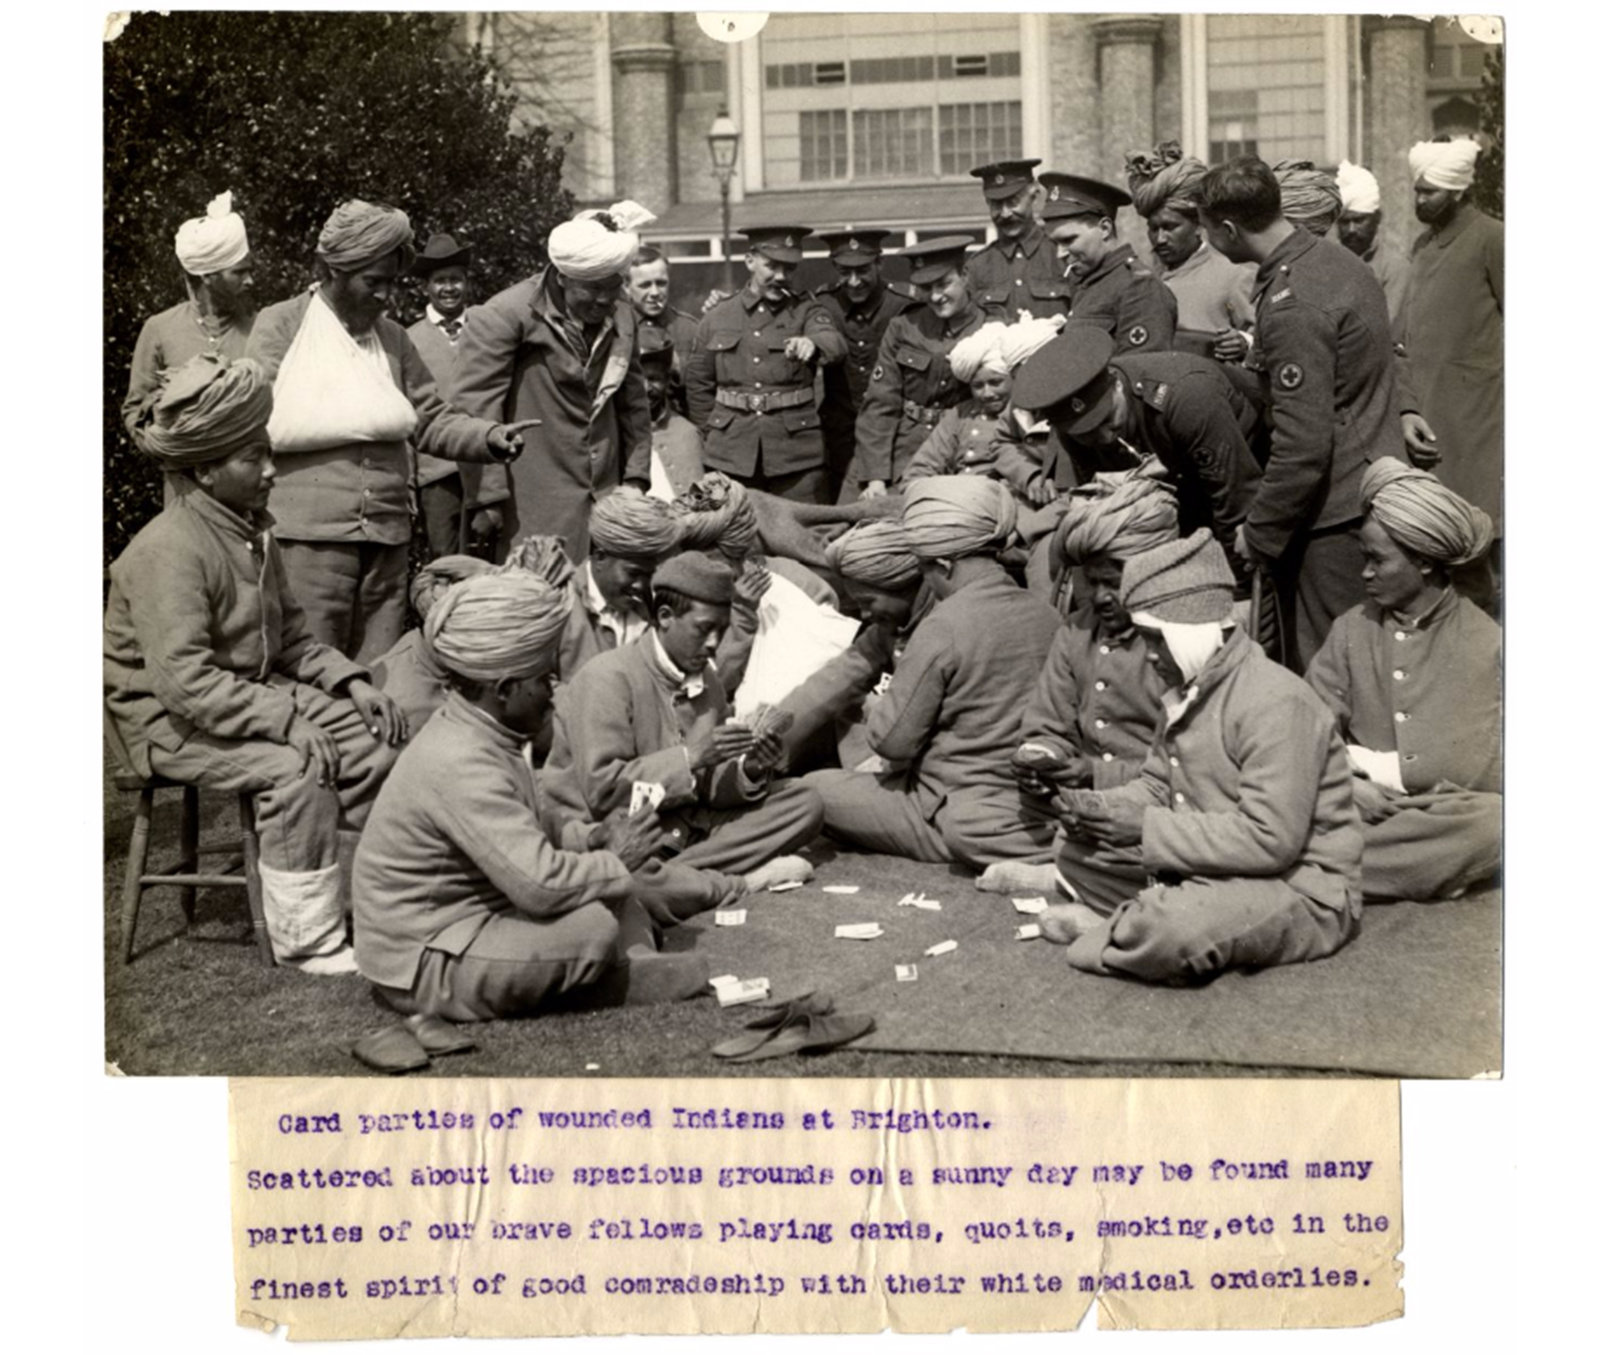 Card parties of wounded Indians at Brighton Hospital, H. D. Girdwood, The British Library , Public Domain Mark